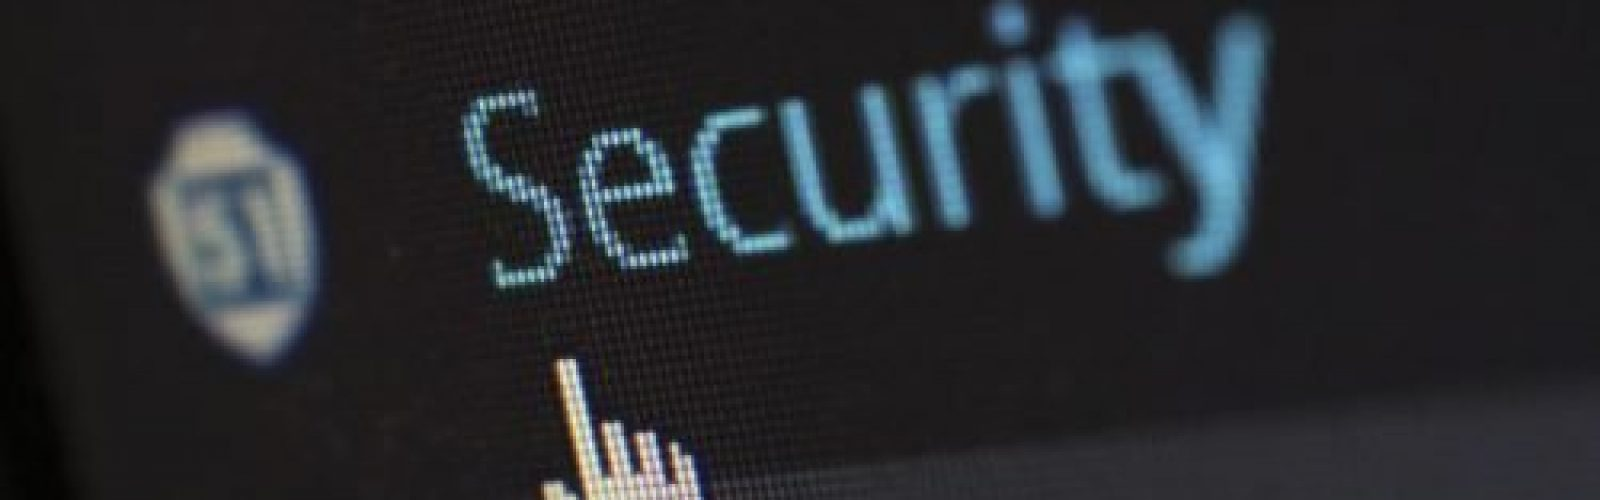 Cybersecurity Hub Keeping Businesses Safe Online